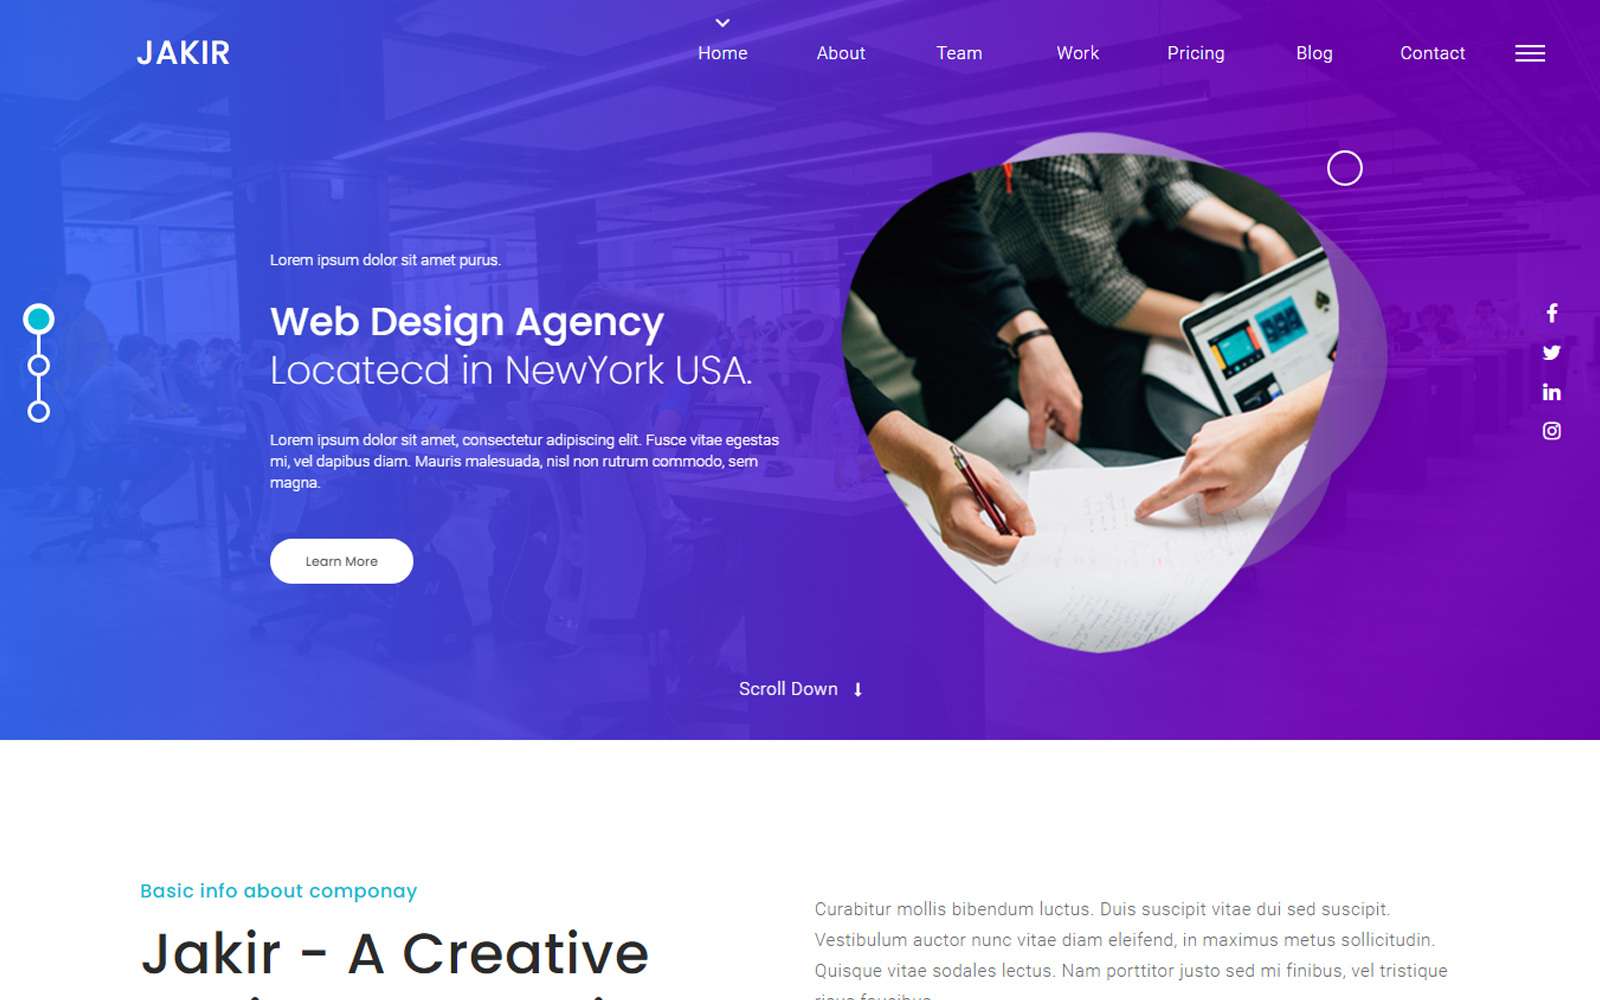 Jakir - A Creative Design Agency Landing Page Template